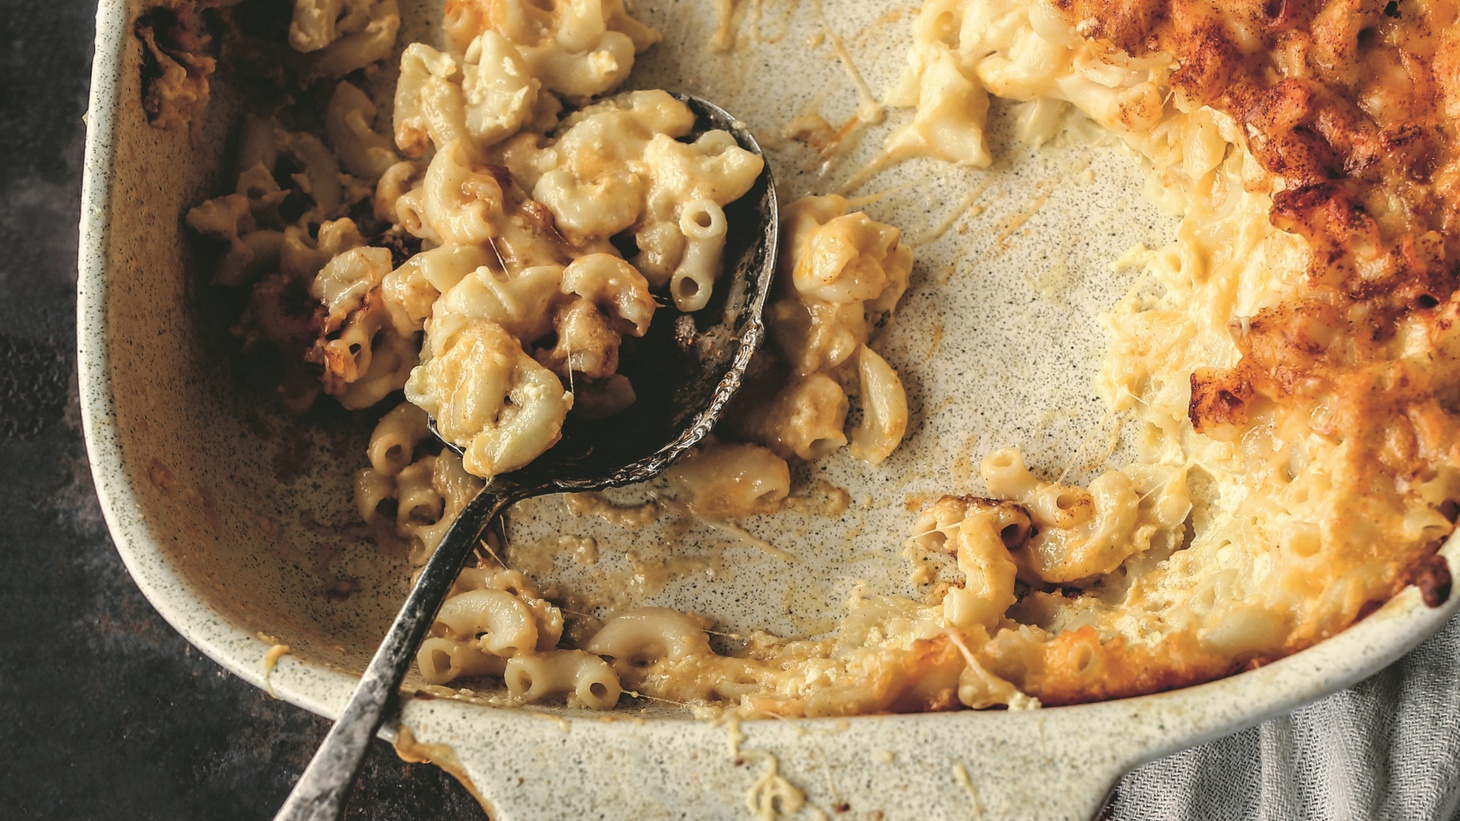 Culinary historian Toni Tipton-Martin describes the sustainability of recipes like macaroni and cheese, which can be traced back to James Hemings, an enslaved chef of Thomas Jefferson.